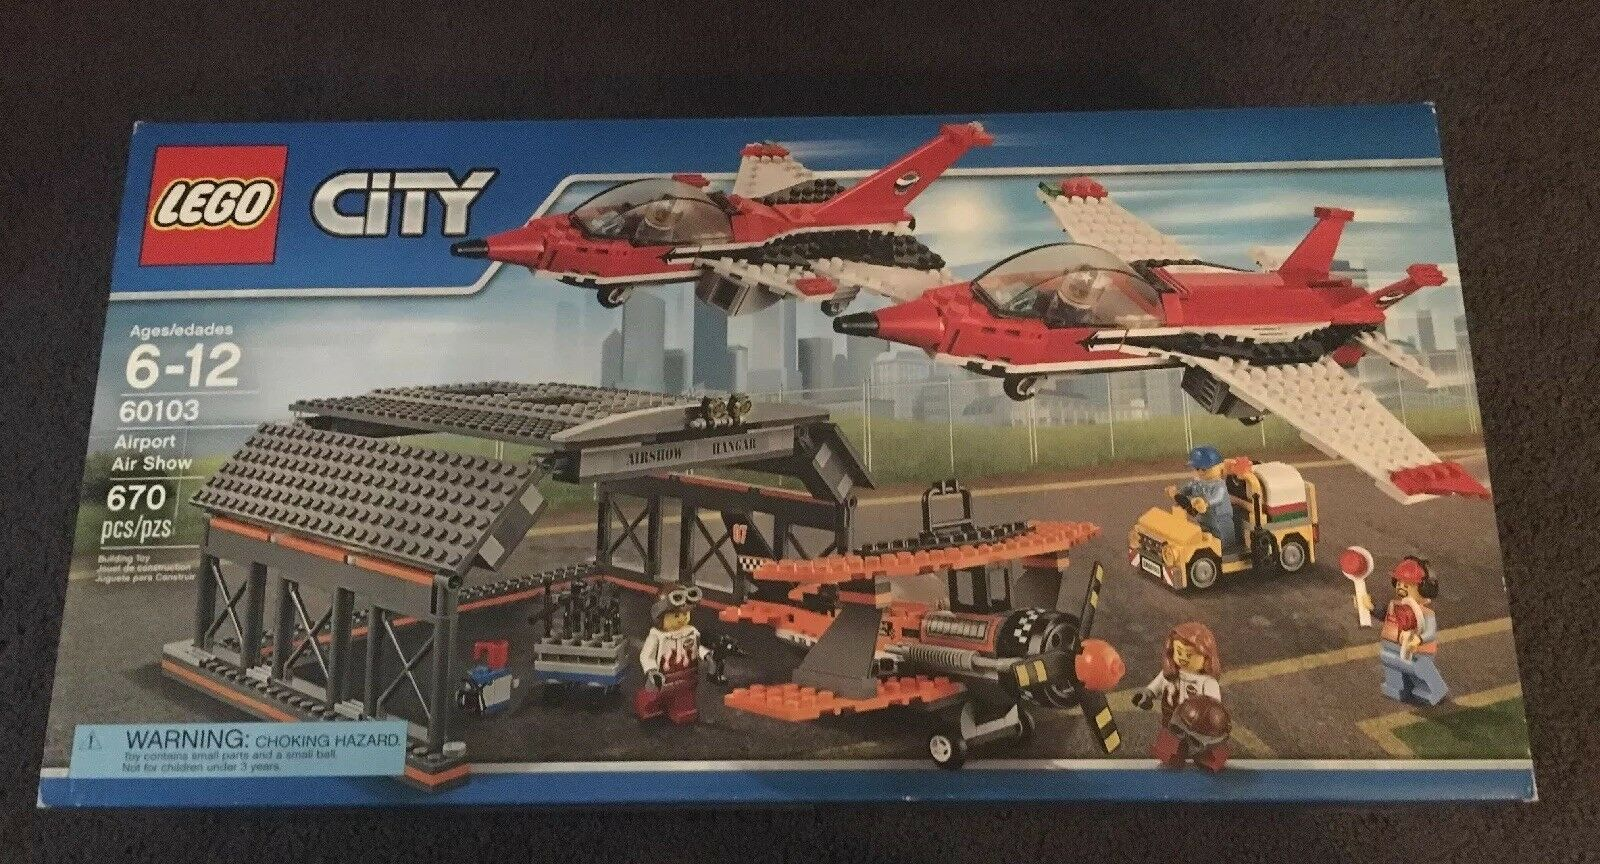 LEGO City Airport Air Show 60103 670 Pieces Brand Nuovo Factory Sealed